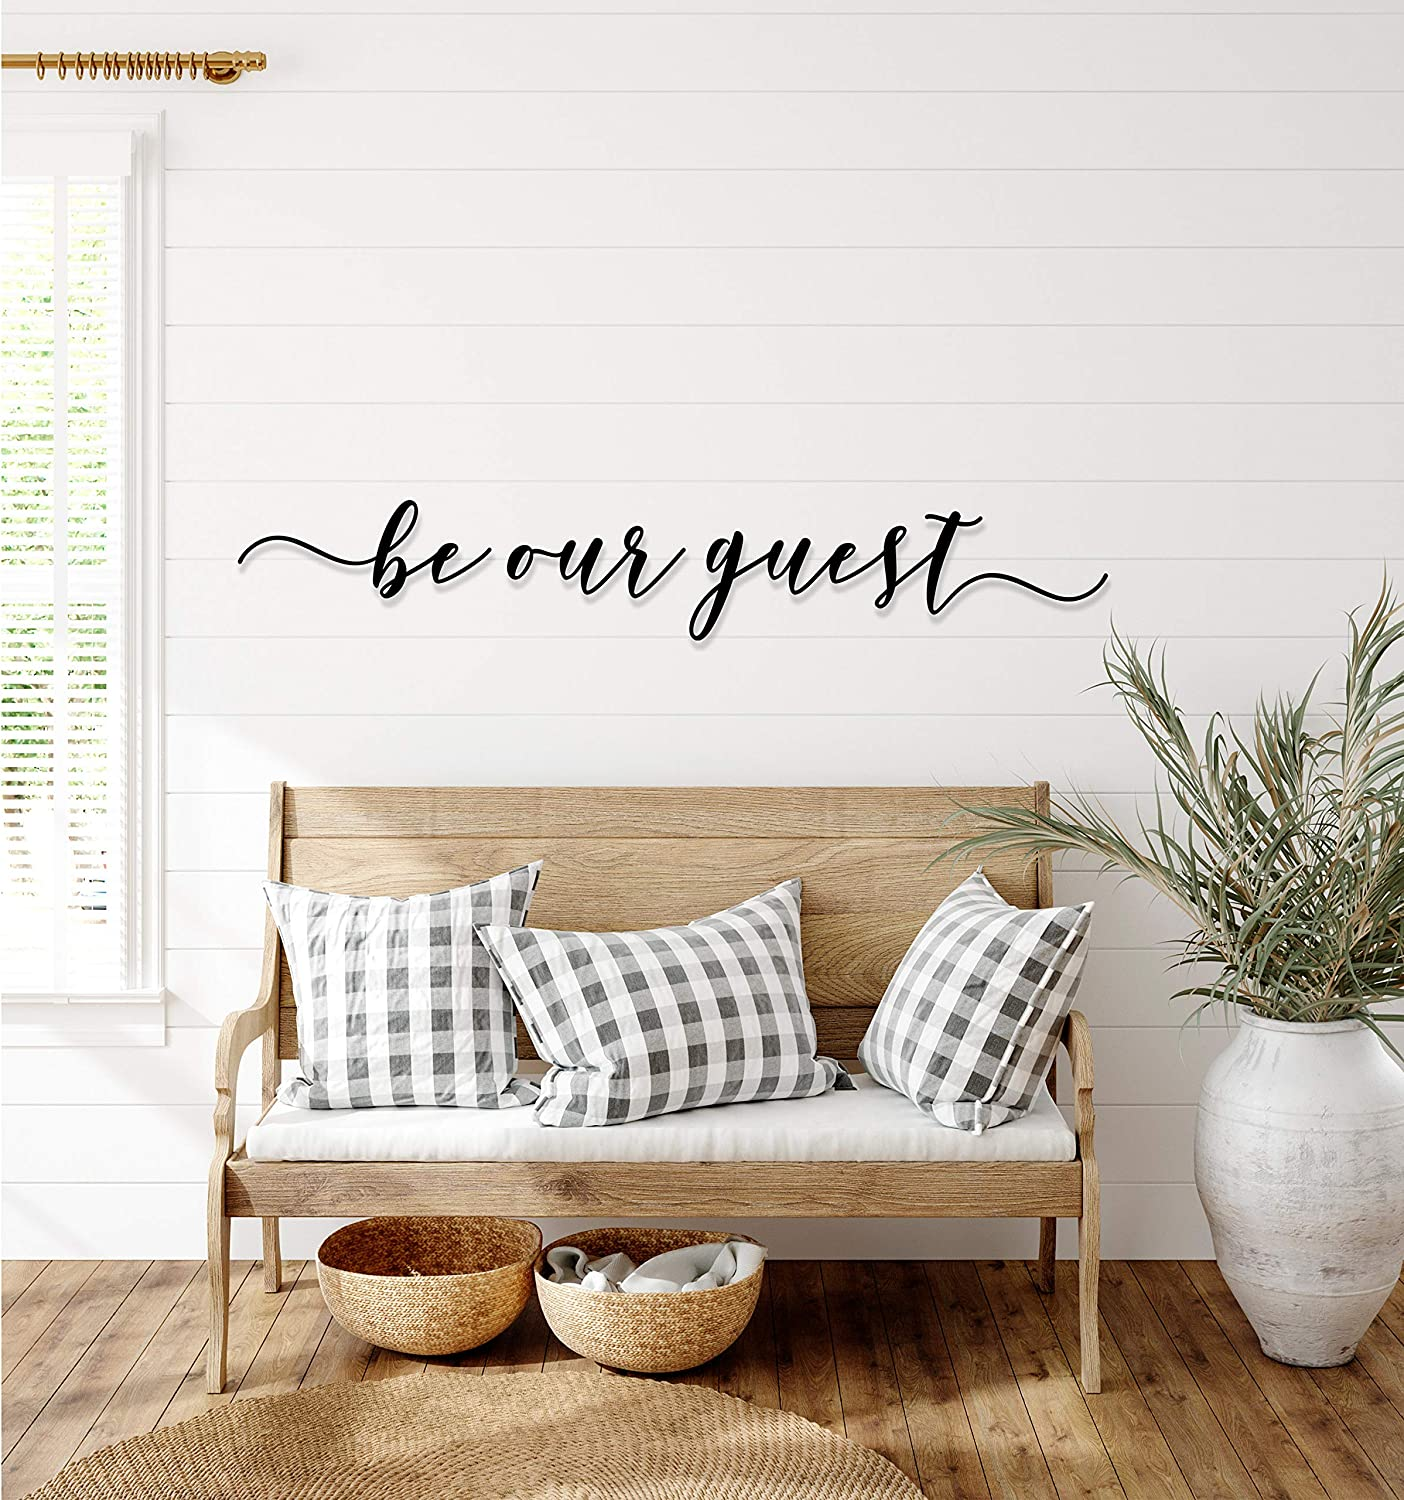 Tamengi Be Our Guest Metal Sign Large Decor Bedroom Wall Popular products T trust Over